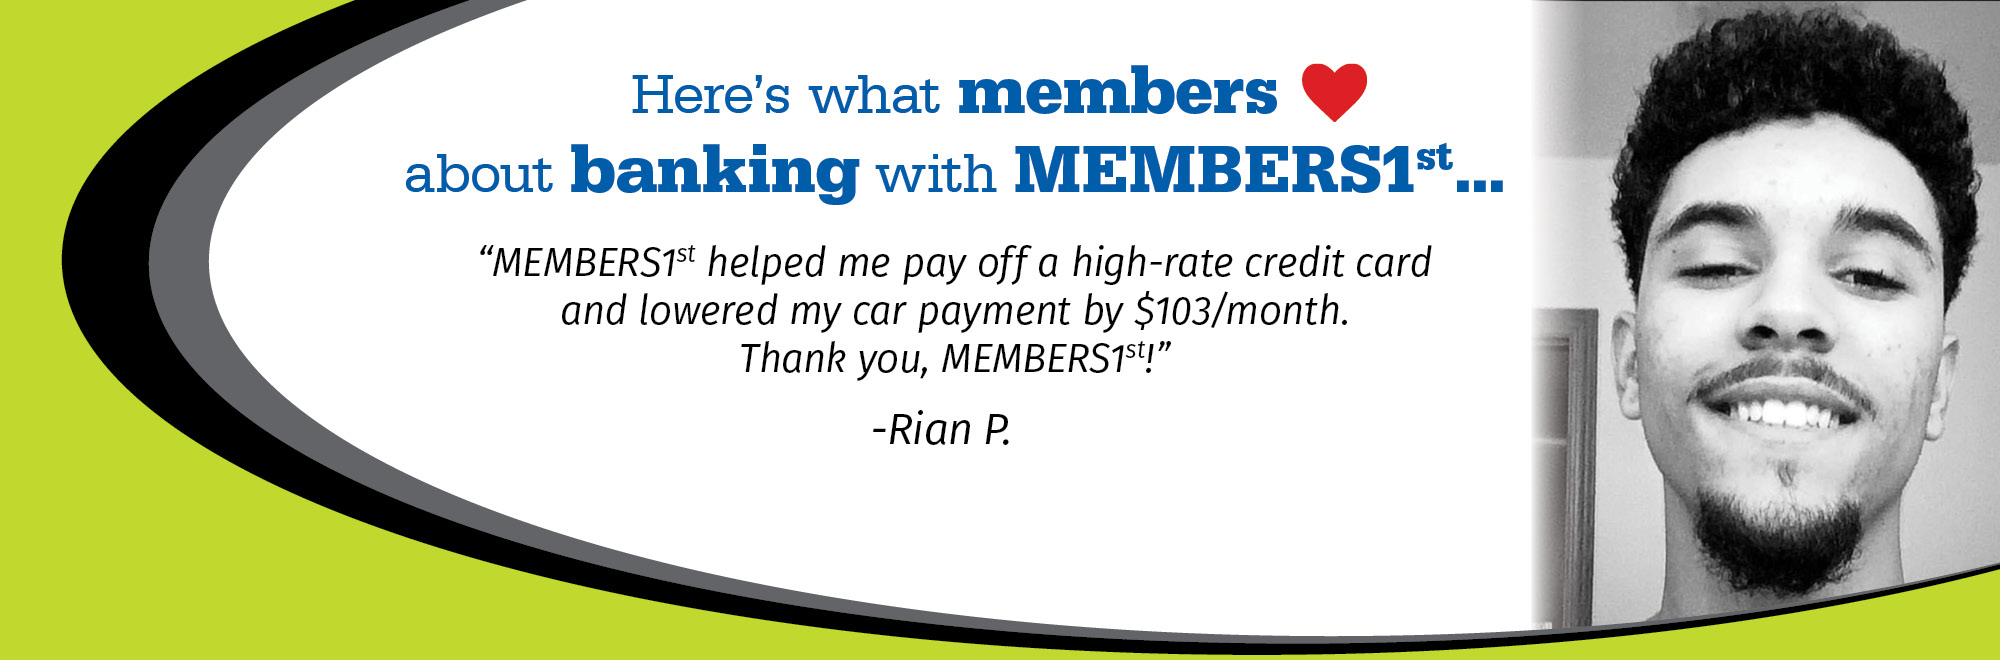 MEMBERS1st helped me pay off a high-rate credit card and lowered my car payment by $103/month. Thank you, MEMBERS1st!